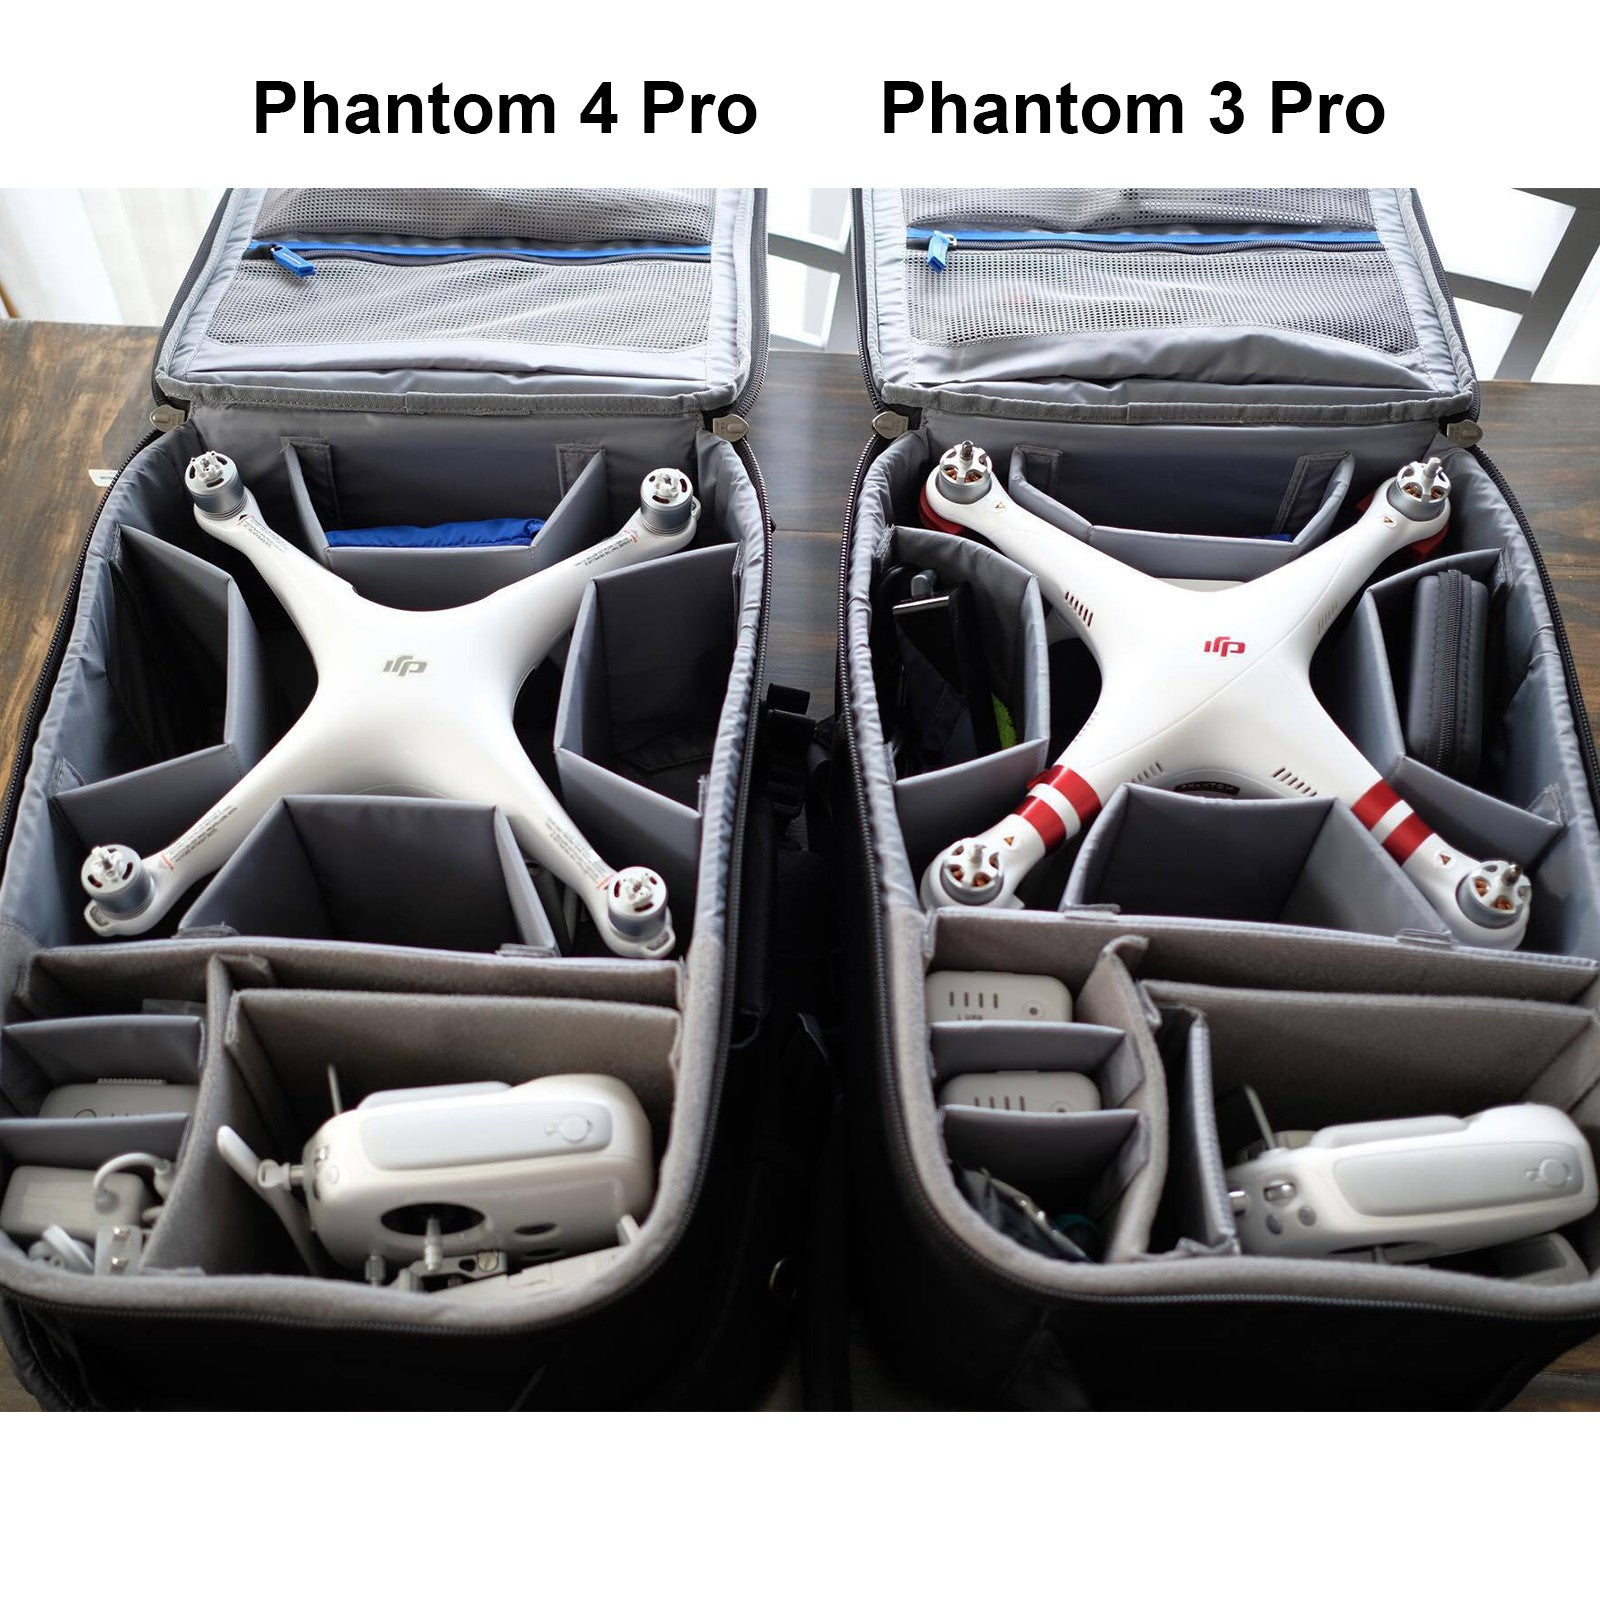 Airport Helipak™ for DJI Phantom